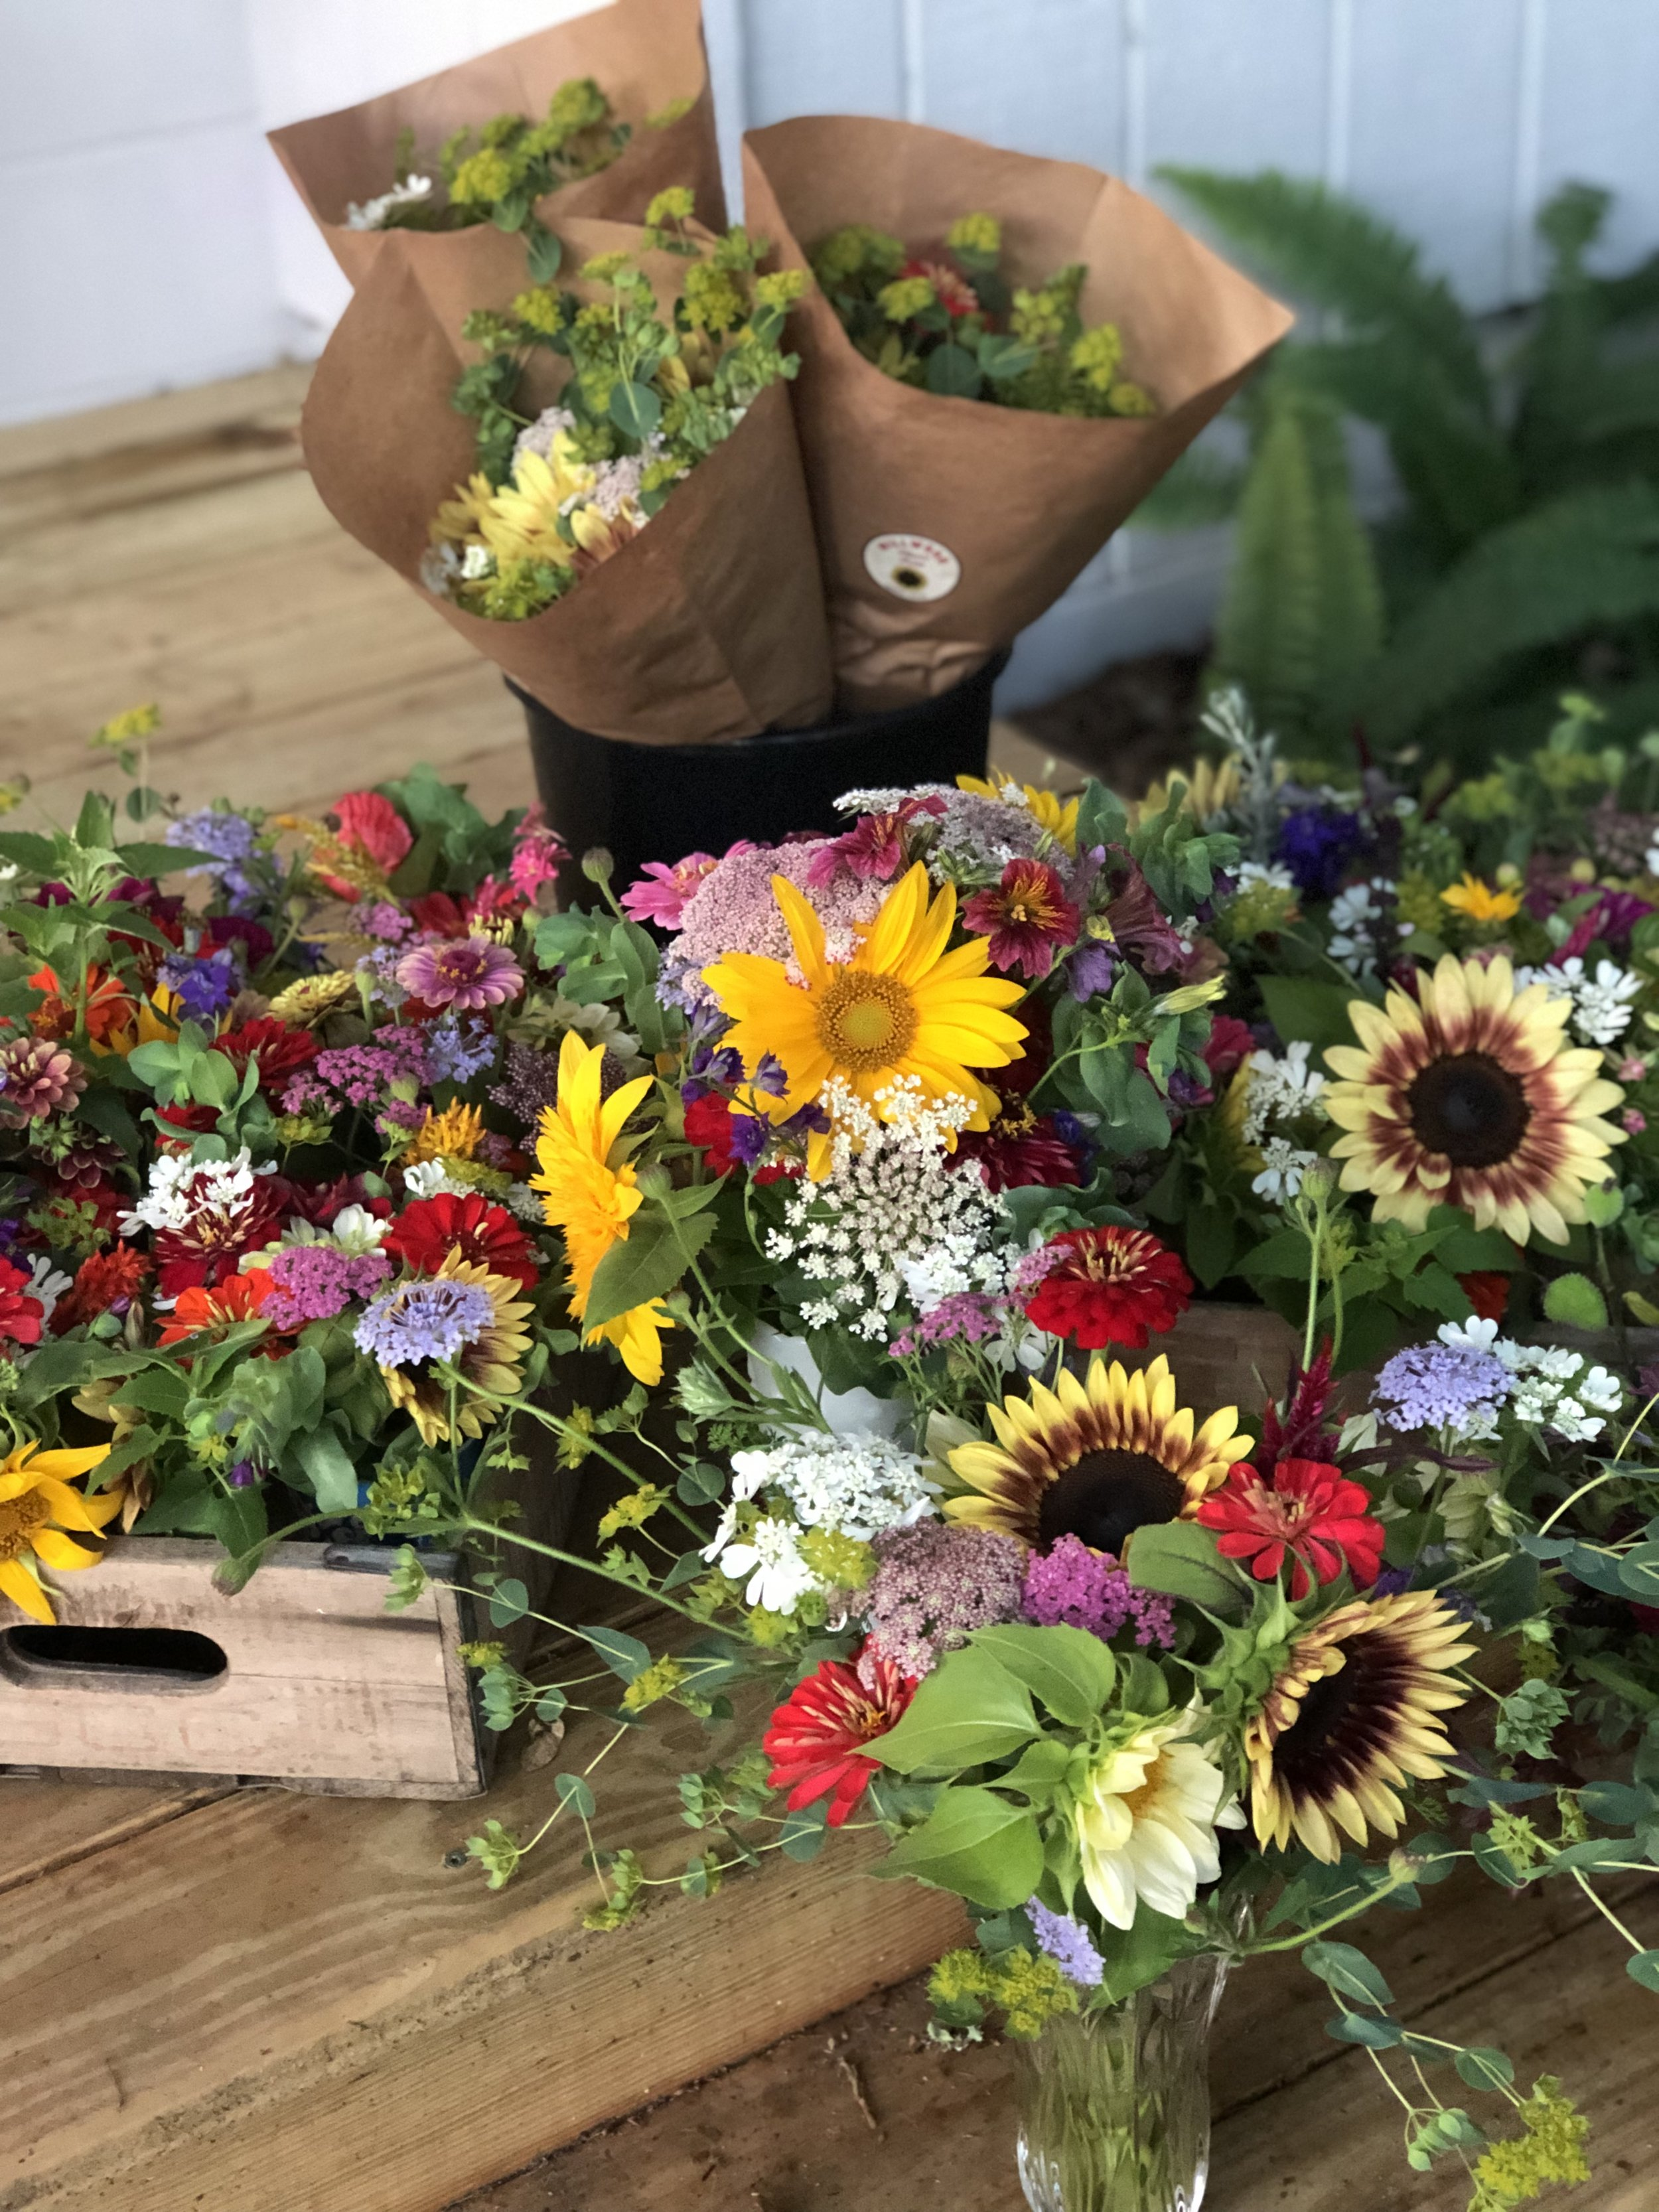 Weekly Bouquet - During our long Florida growing season, you can have a fresh bouquet picked just for you on a weekly, bi-weekly or monthly basis. Available October through May.